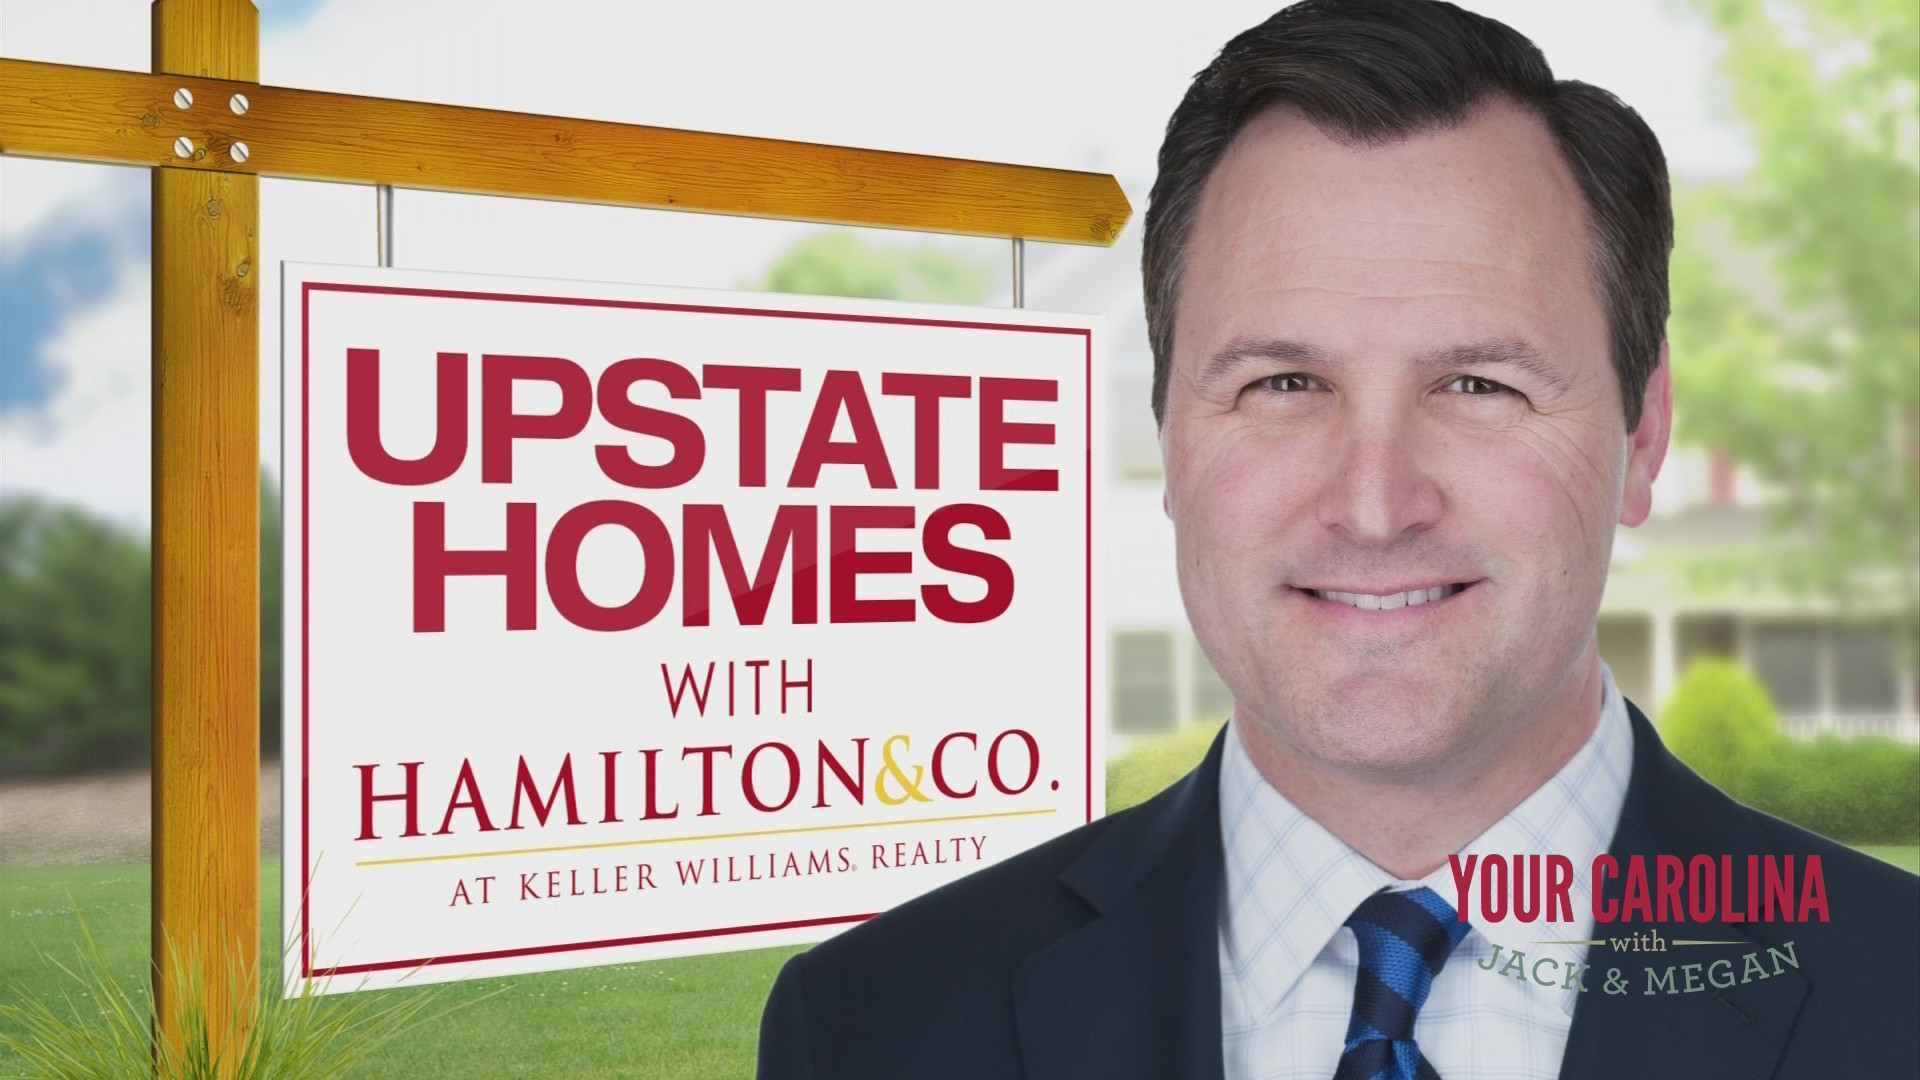 Upstate Homes - Time To Buy Or Sell?